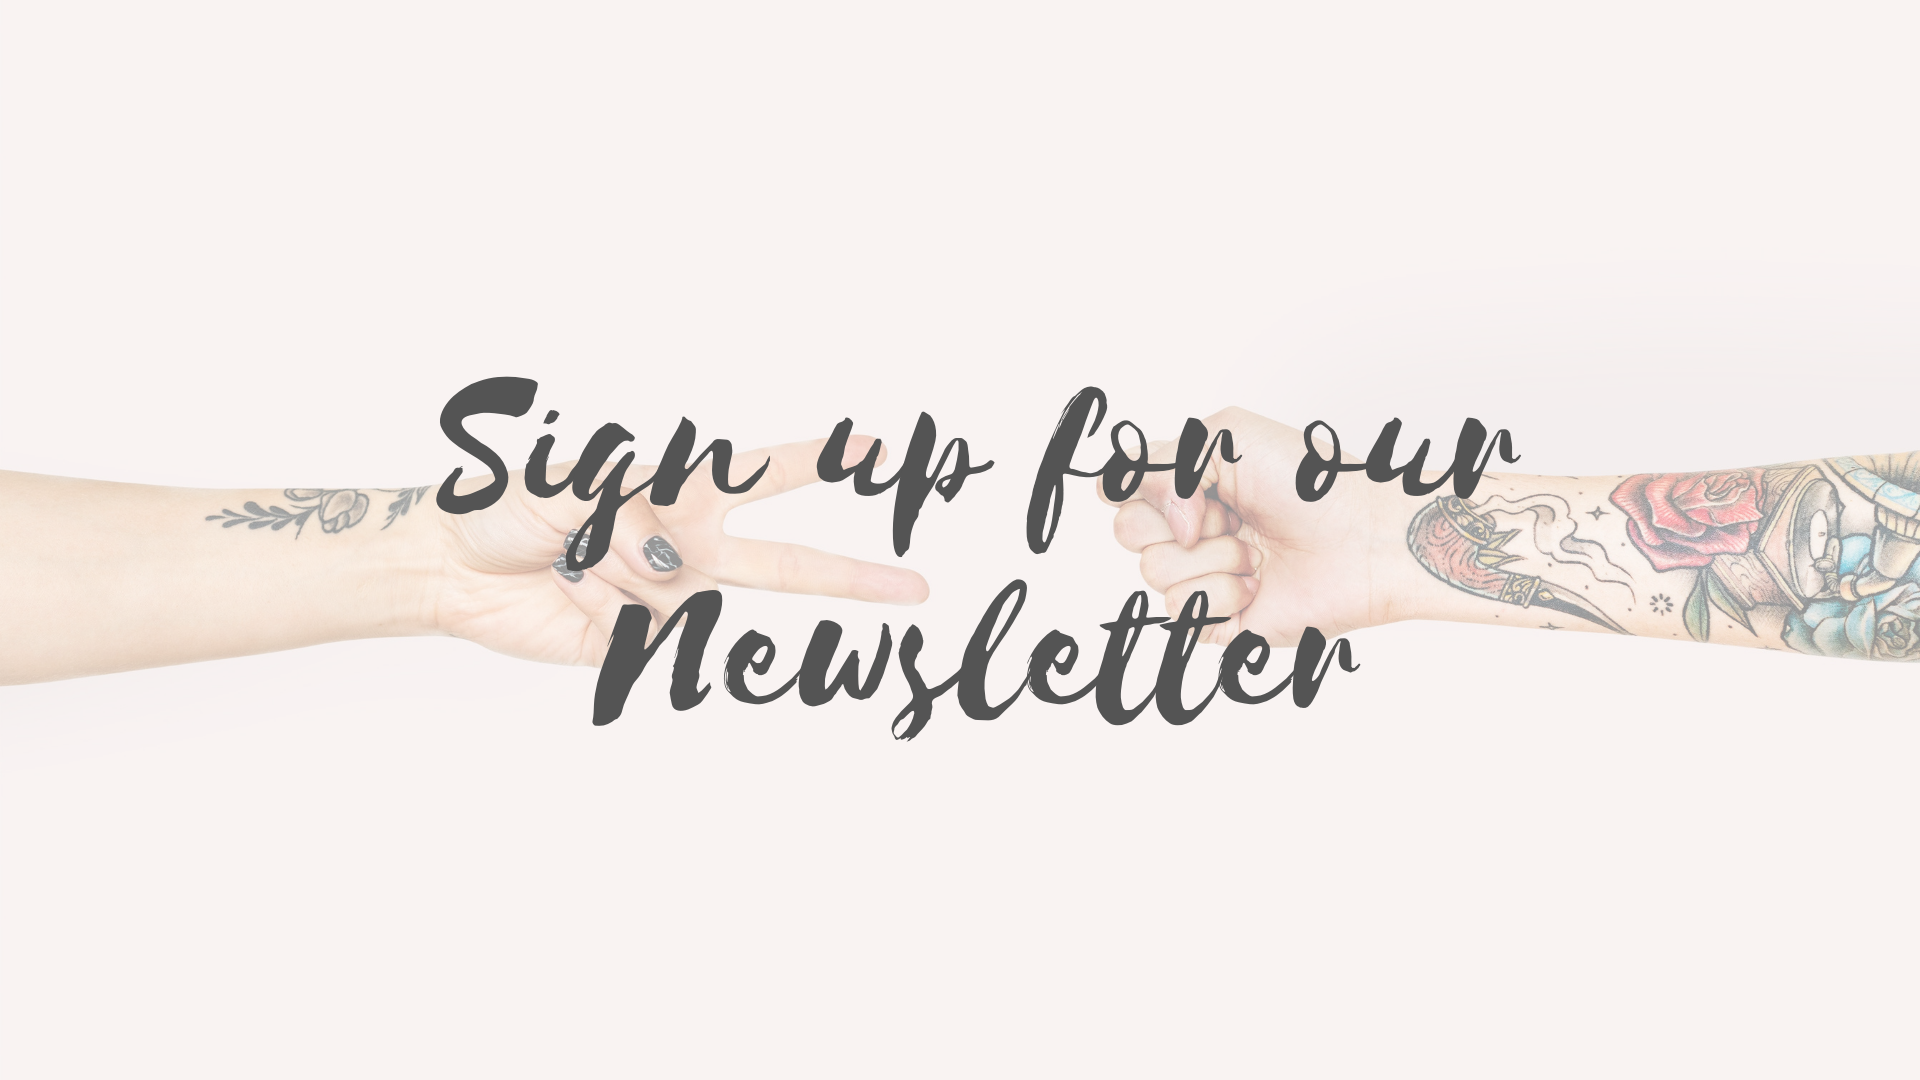 Click Image to sign up for our newsletter